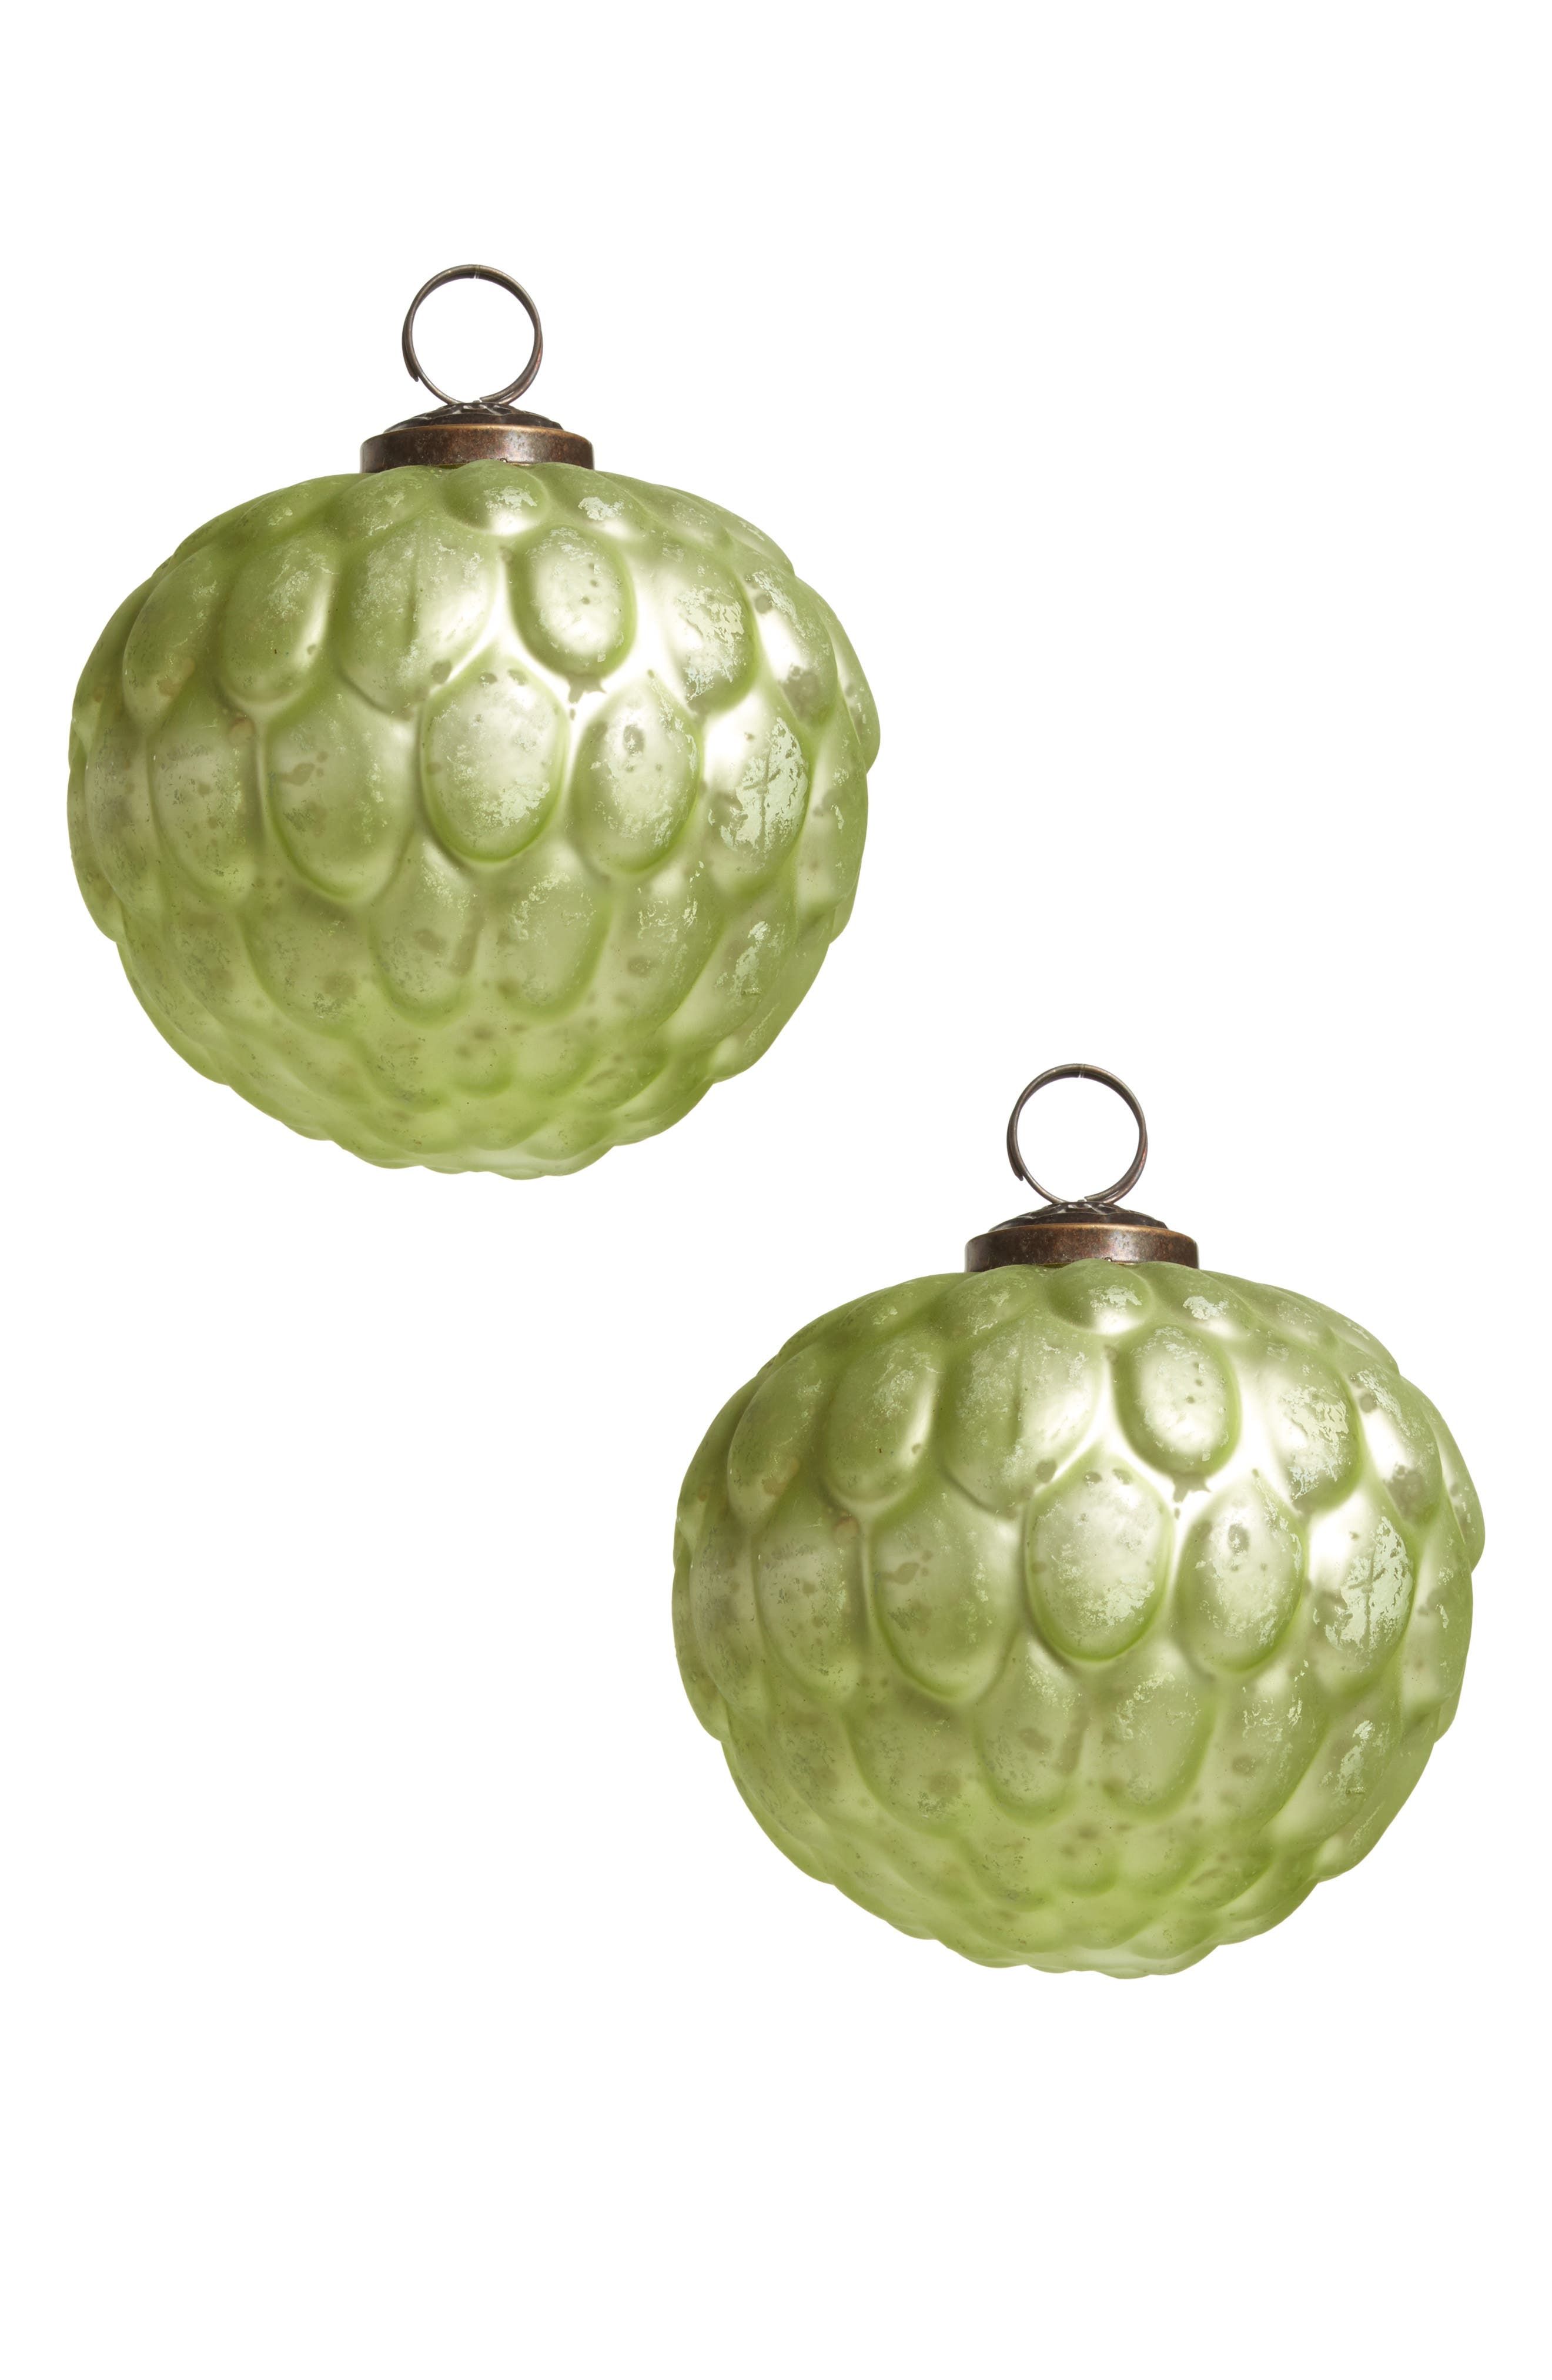 Set of 2 Glass Ball Ornaments,                             Main thumbnail 1, color,                             Silver/ Green Matte Foil